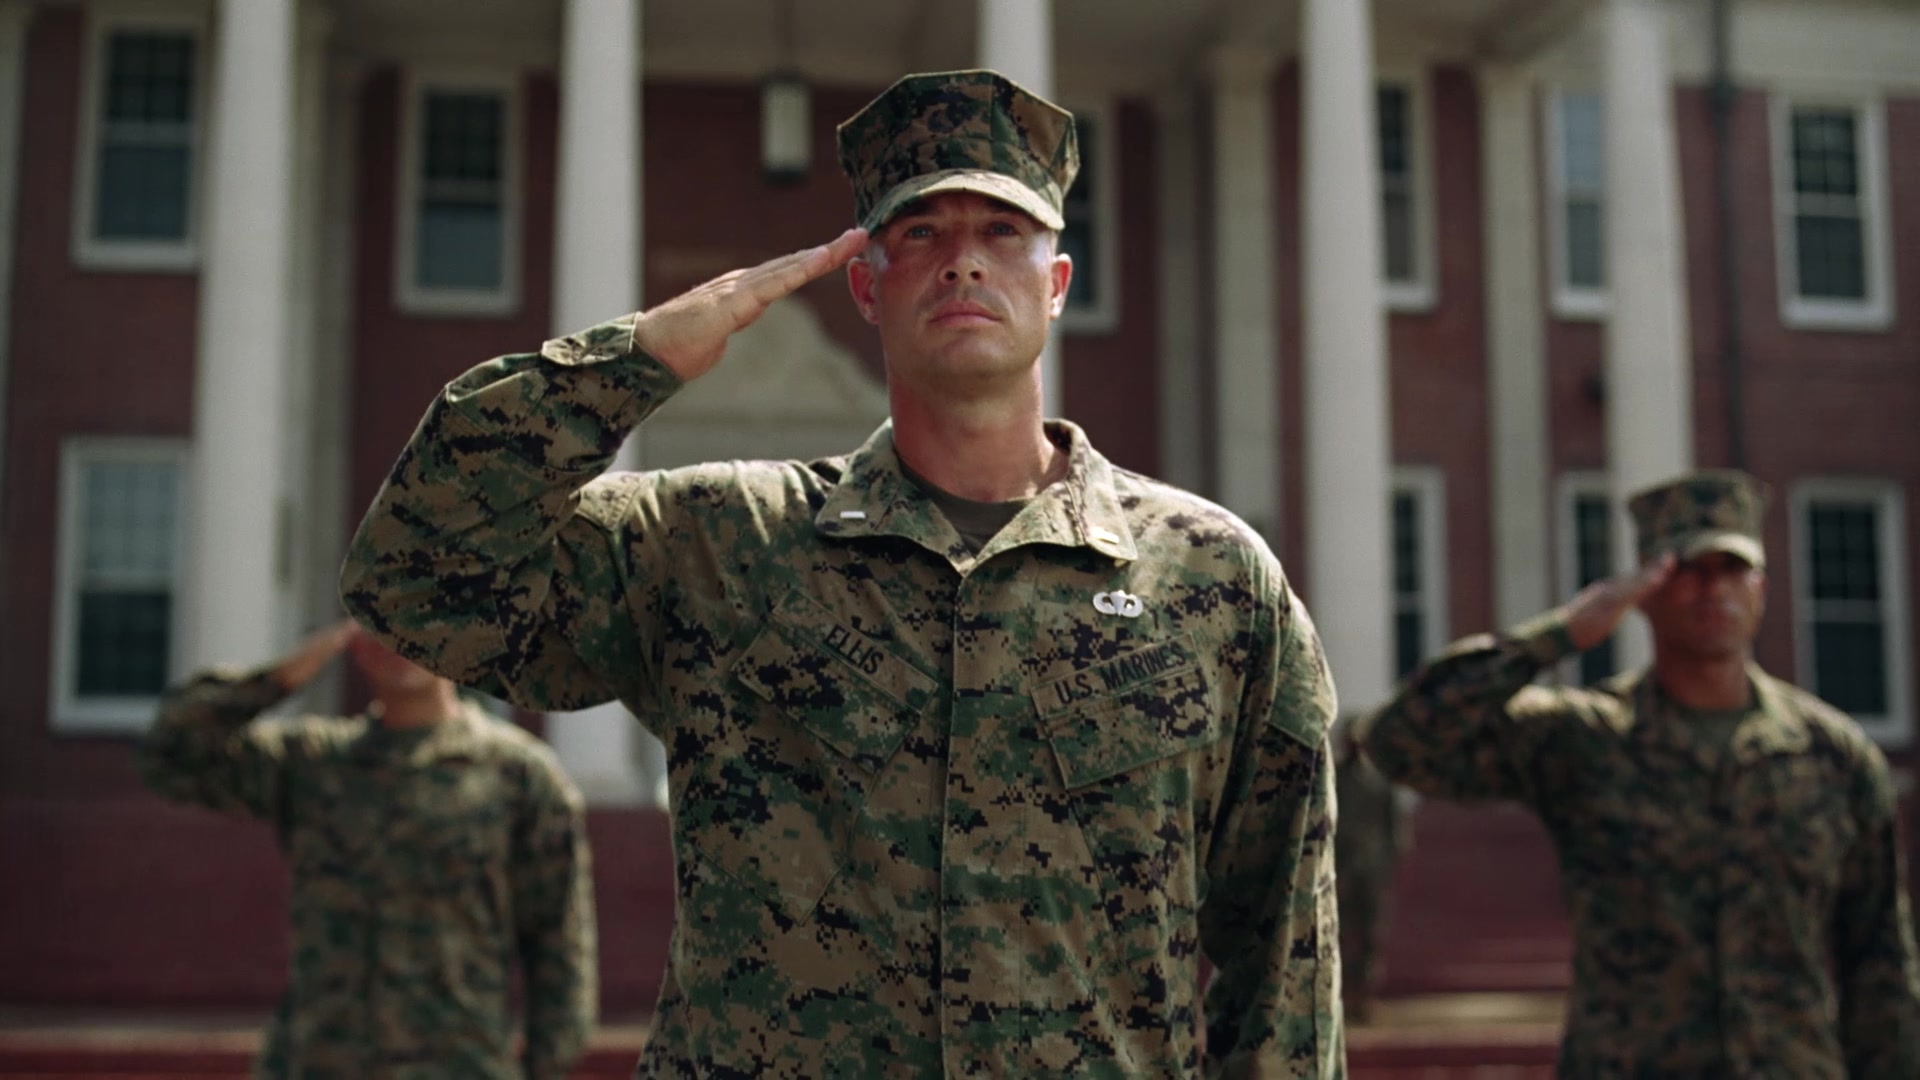 The Marine Corps plays an integral role in the National Defense Strategy. Its training, capabilities and global presence ensure that the Navy-Marine Corps team remains an expeditionary force-in-readiness when responding to crises, creating decision space or winning battles. (U.S. Marine Corps video Courtesy of Marine Corps Recruiting Command)